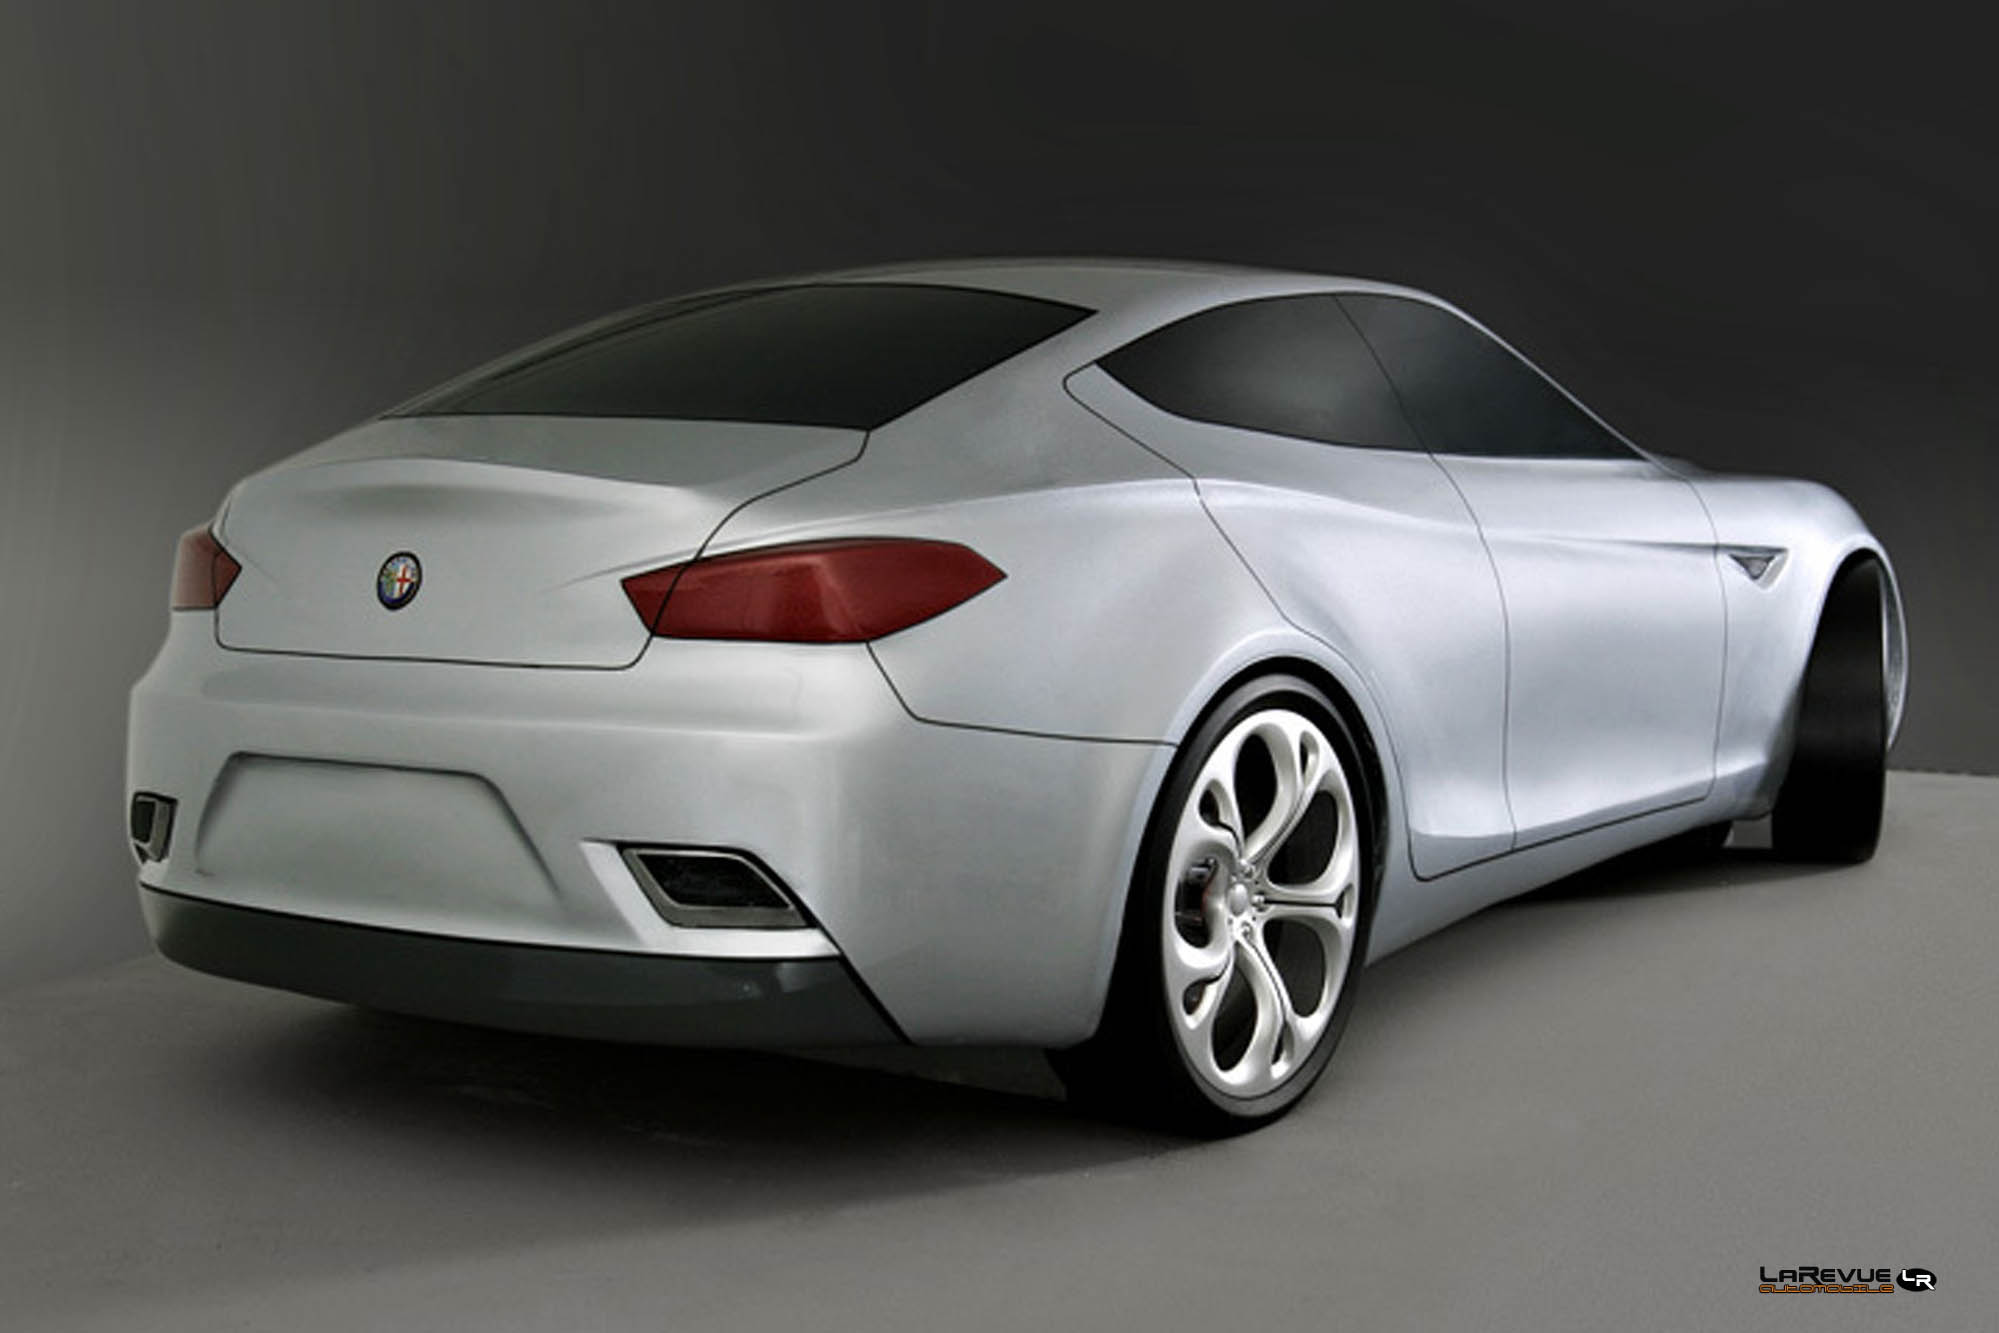 Alfa Romeo Giulia 159 nouvelle Exterieur Car Pictures High Resolution Image Download